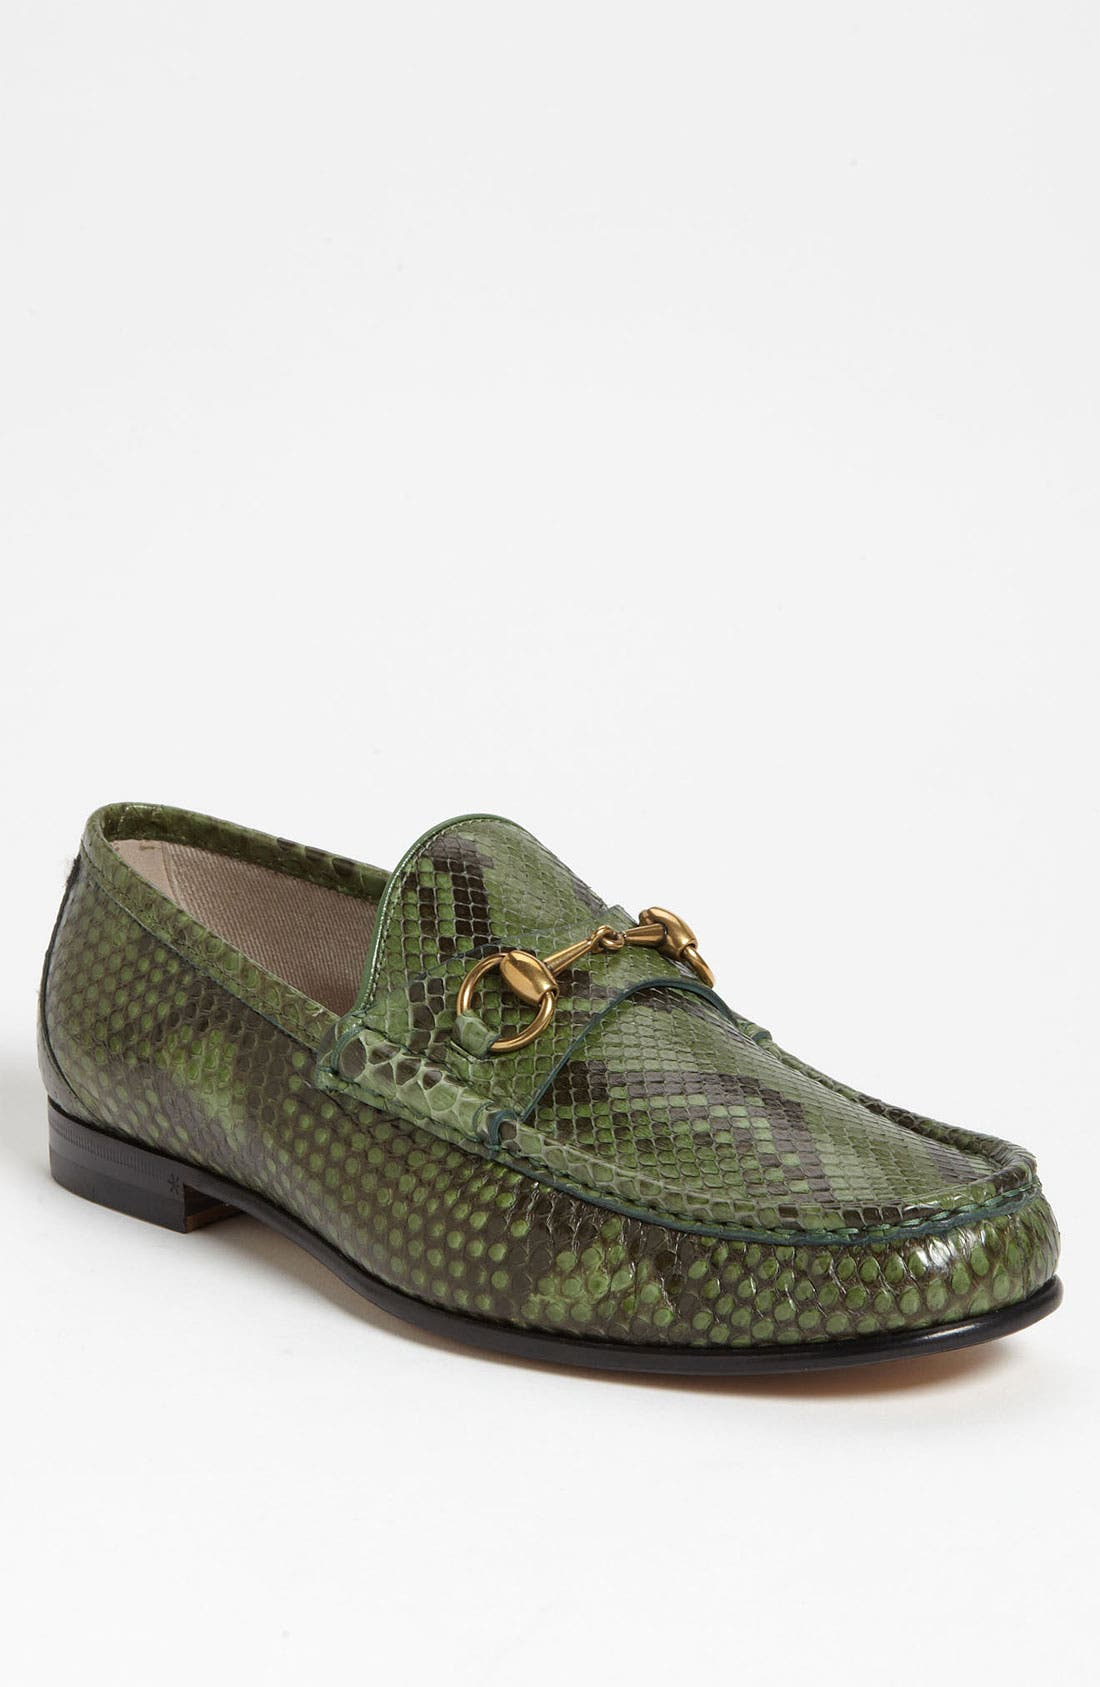 Main Image - Gucci 'Roos' Python Bit Loafer